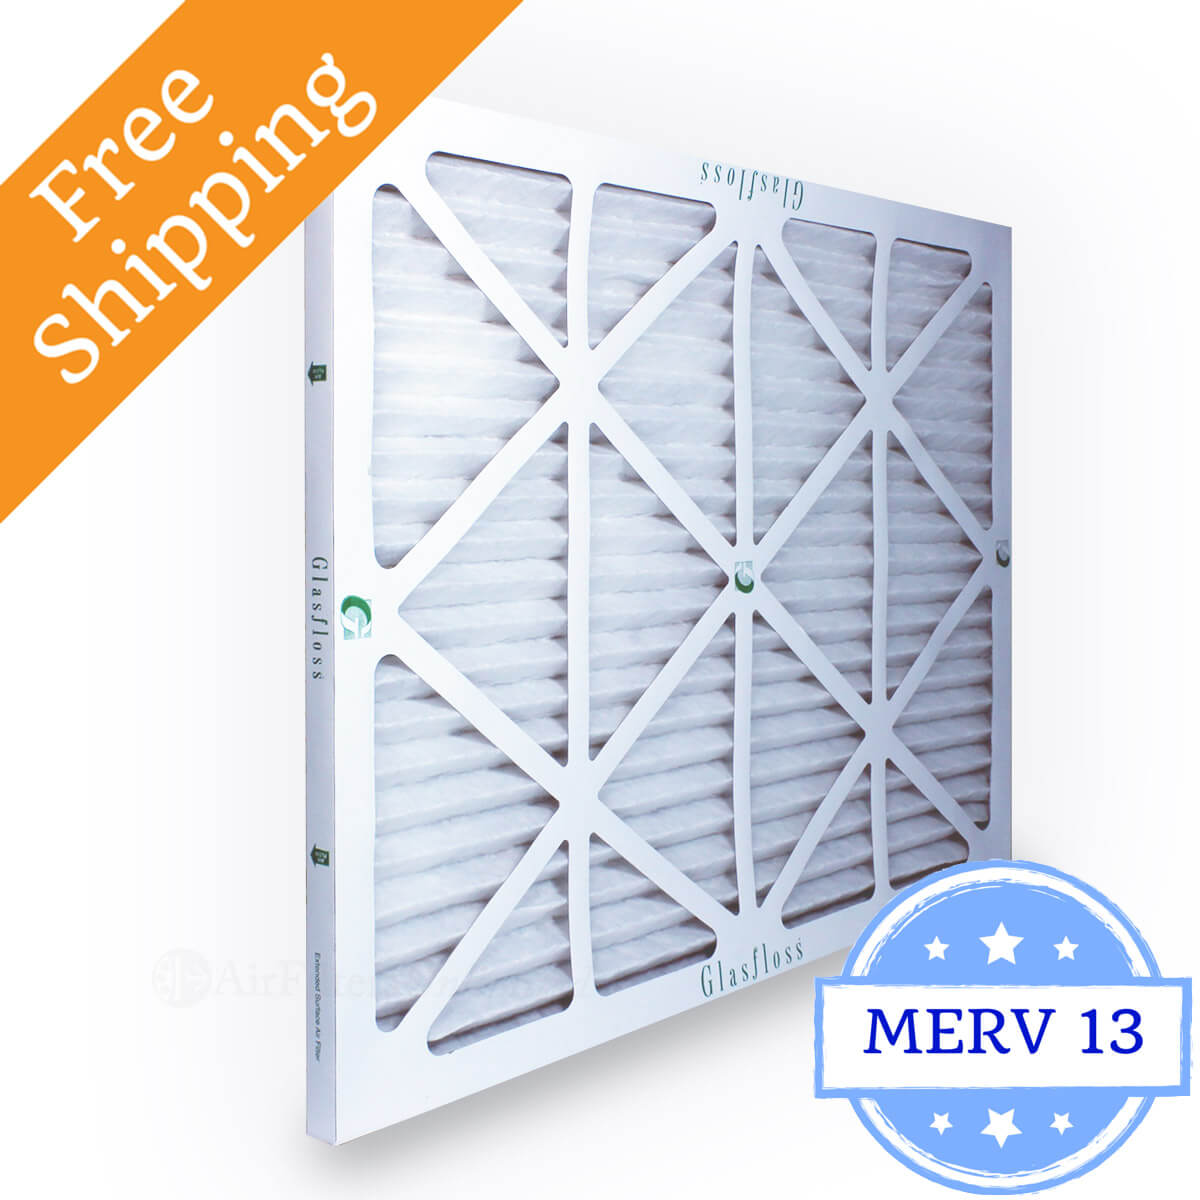 Glasfloss 20x30x1 Air Filter MR-13 Series